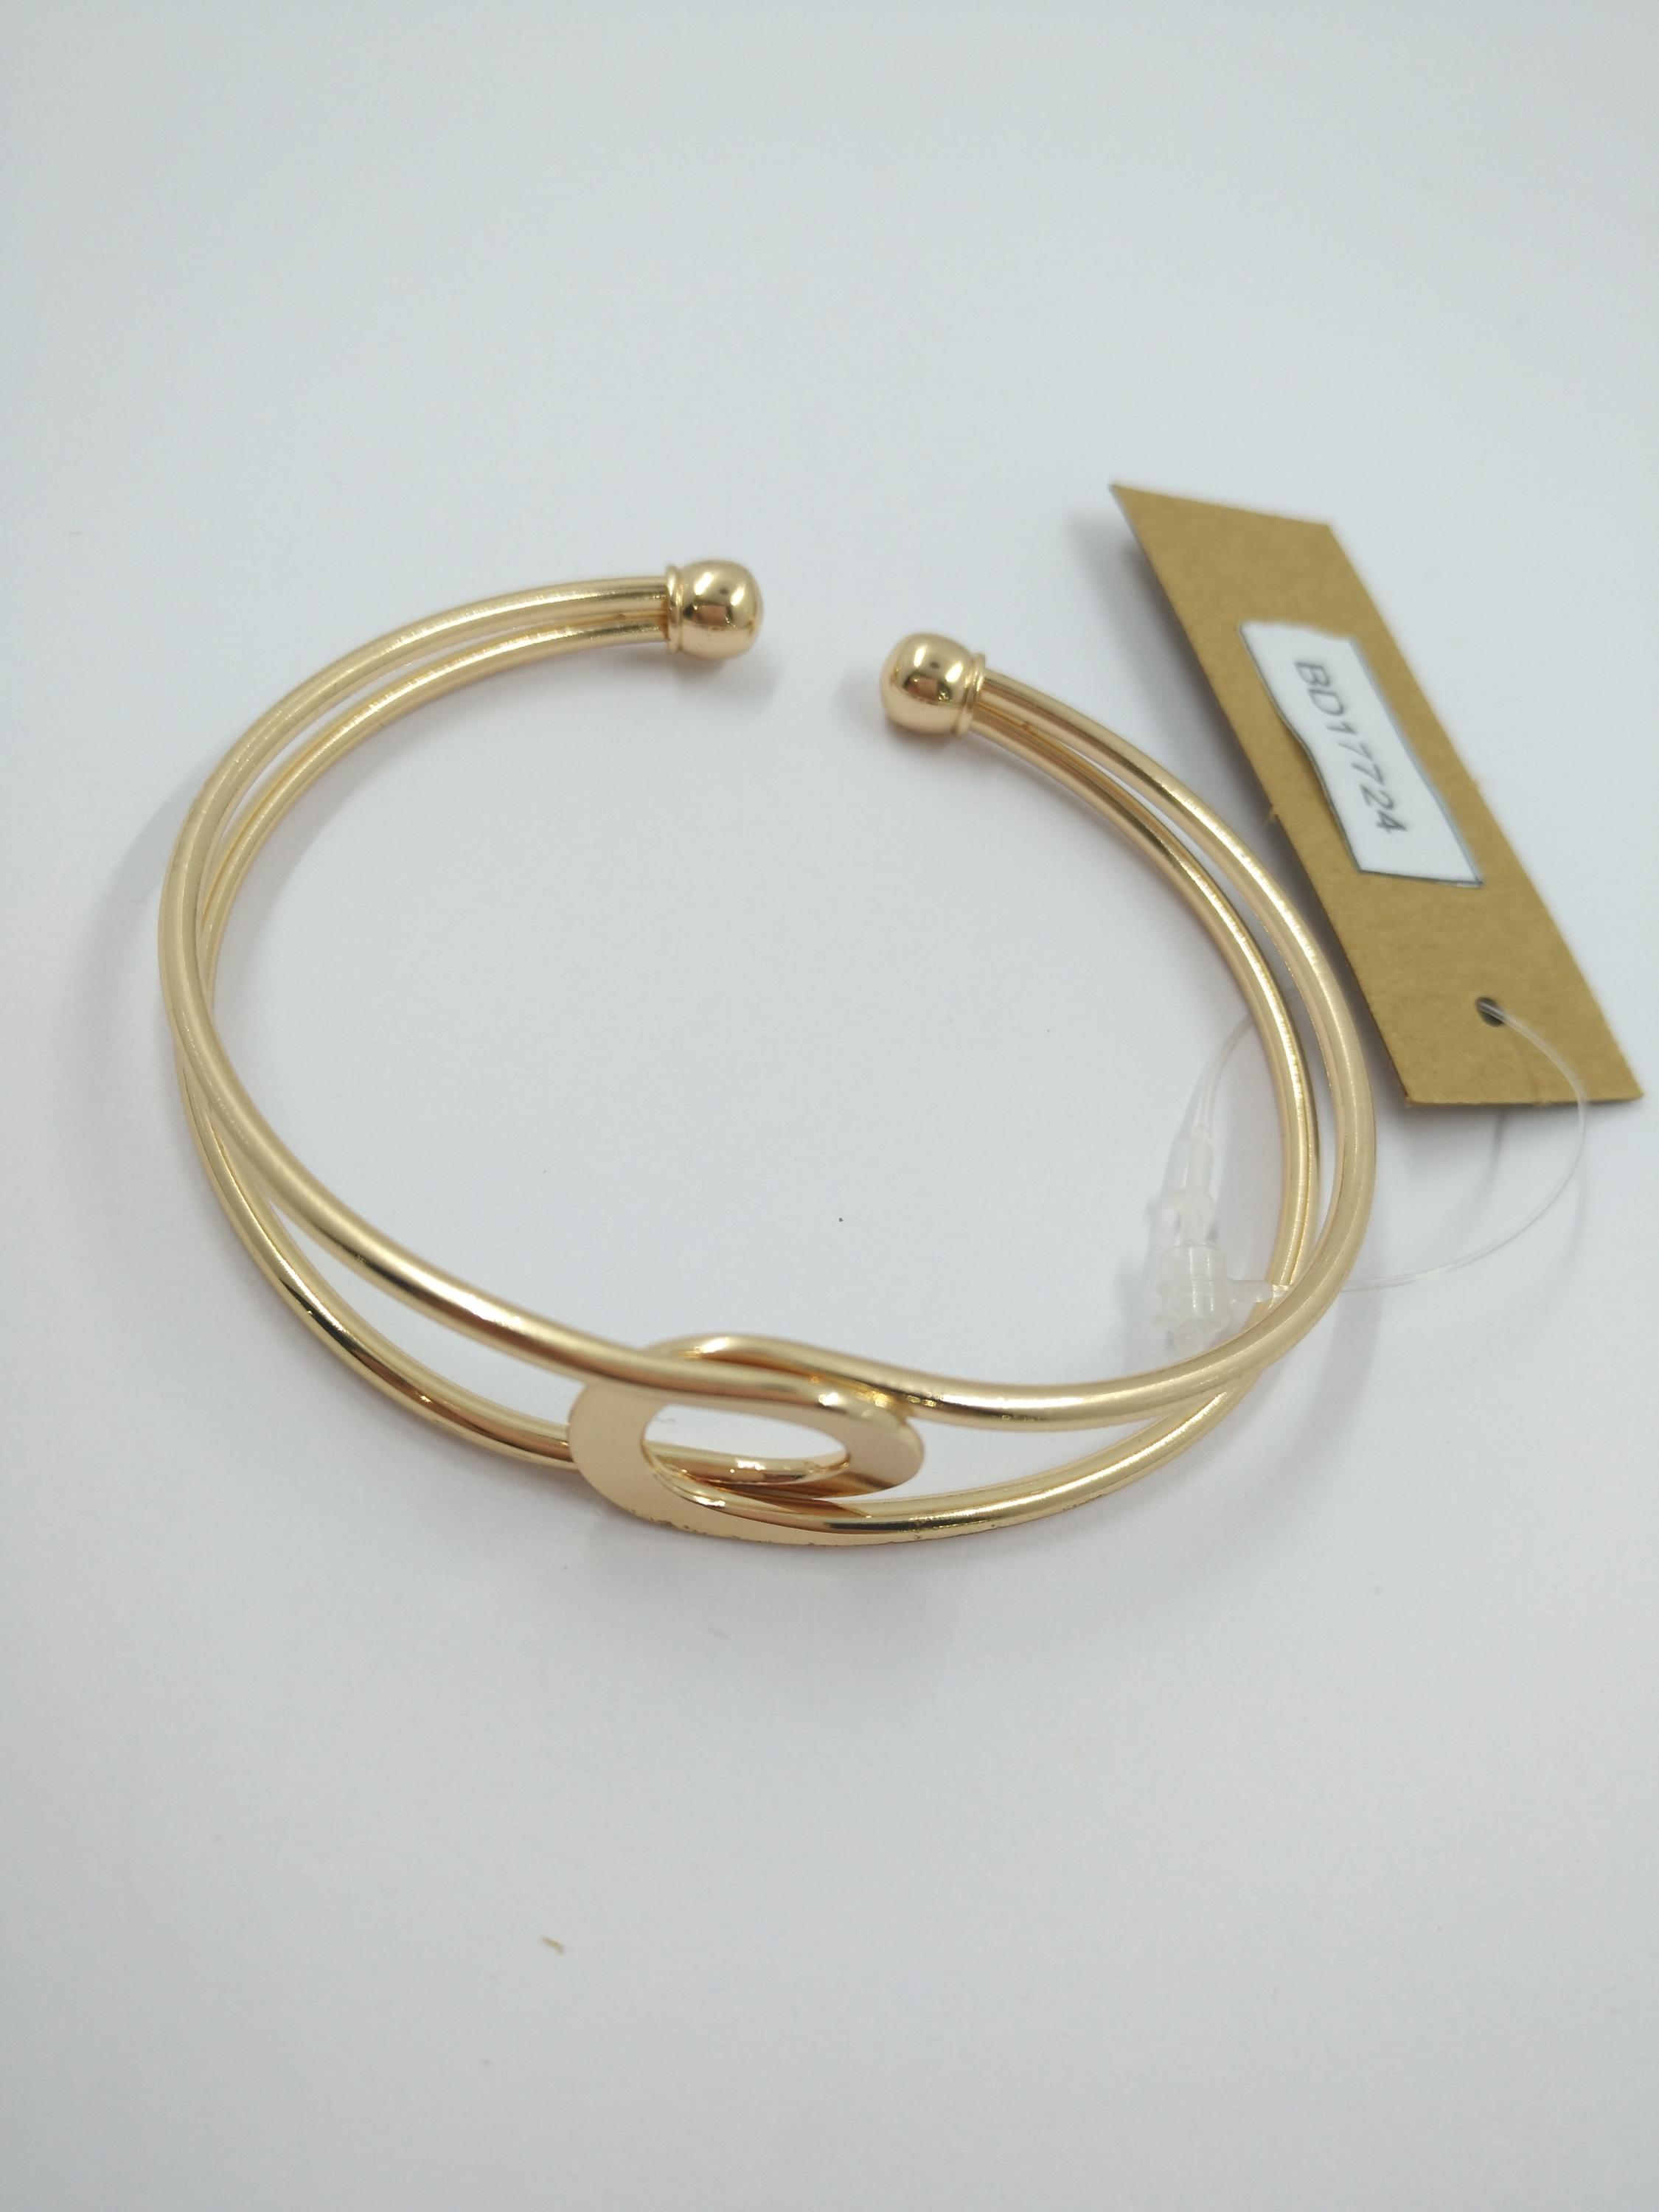 store online stainless women steel bracelet arrival love new gold product plated tt rose with design for on piece stamp